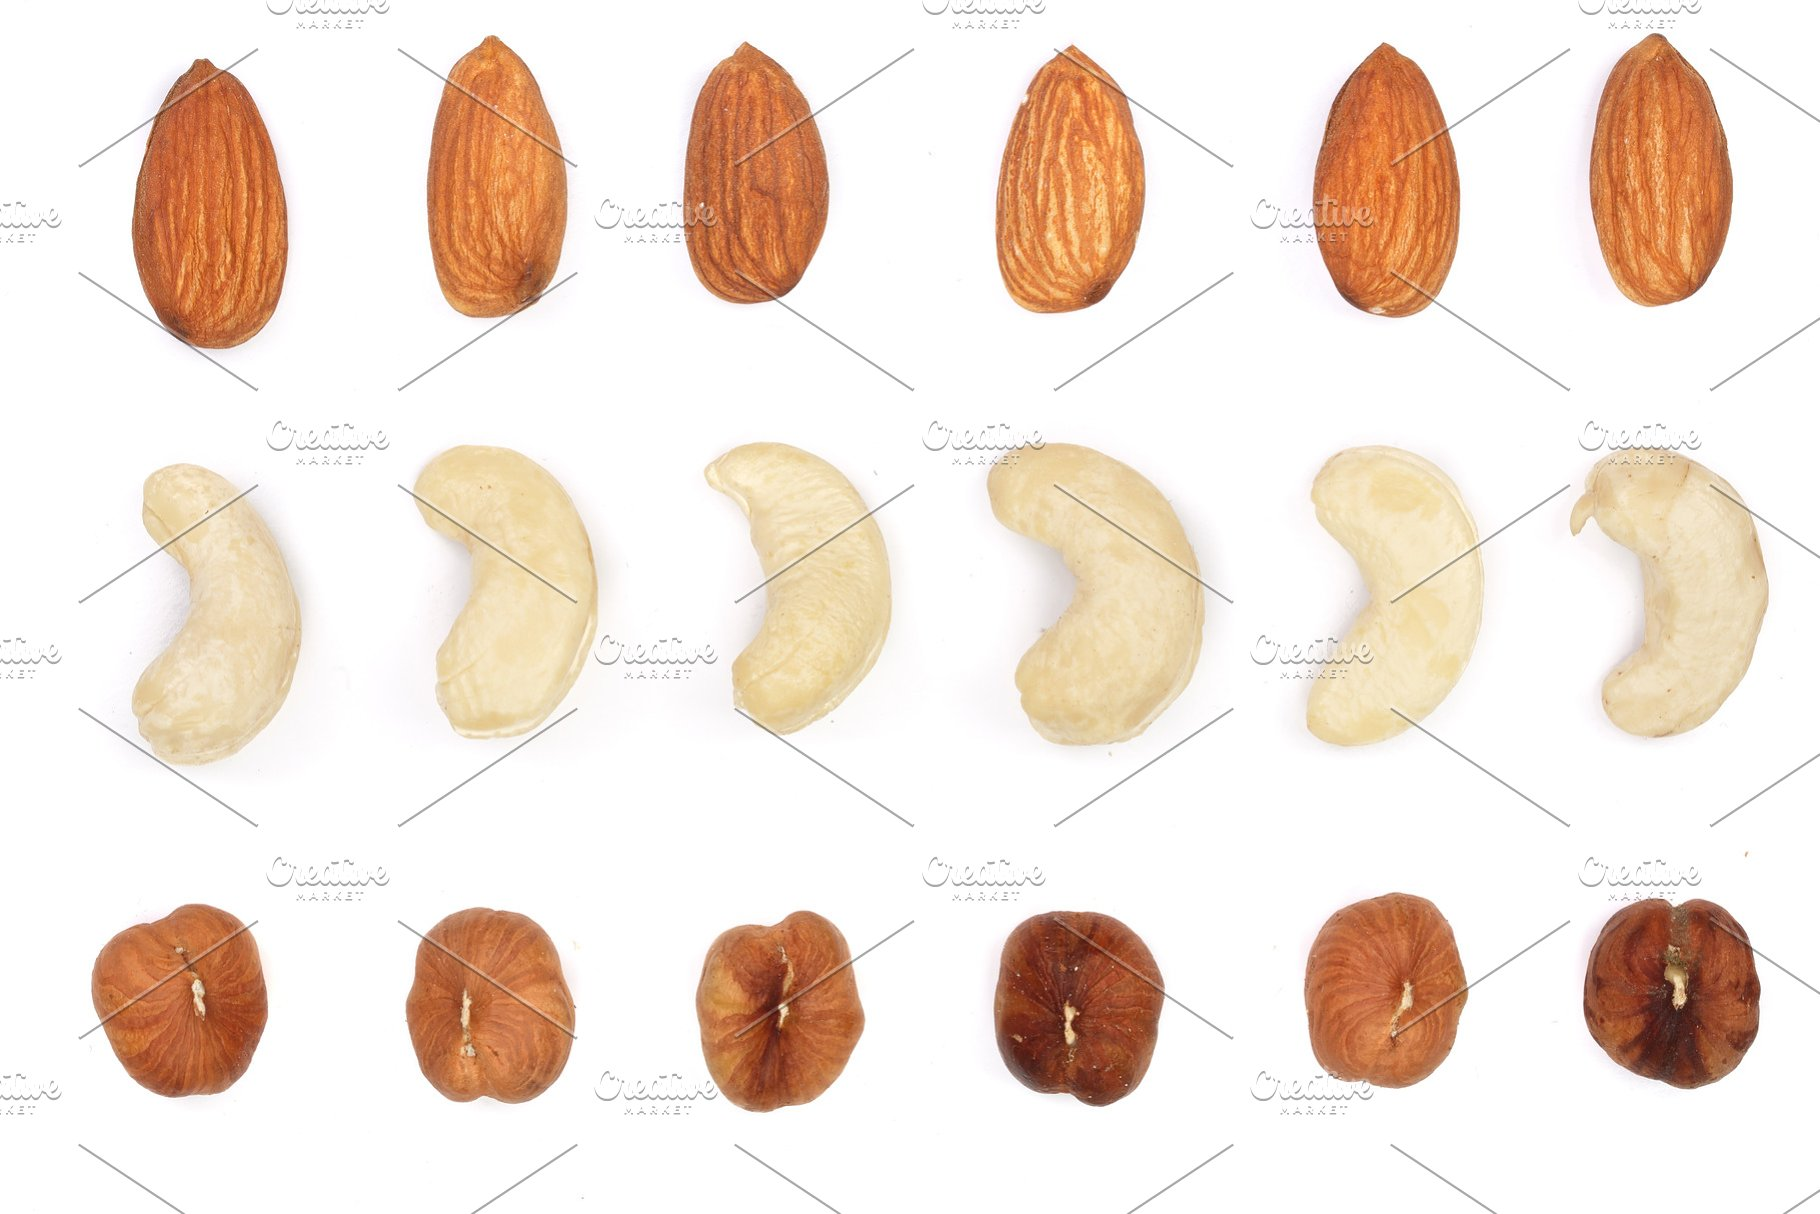 Mix Nuts Almonds Cashews Hazelnuts Isolated On White Background Top View Flat Lay